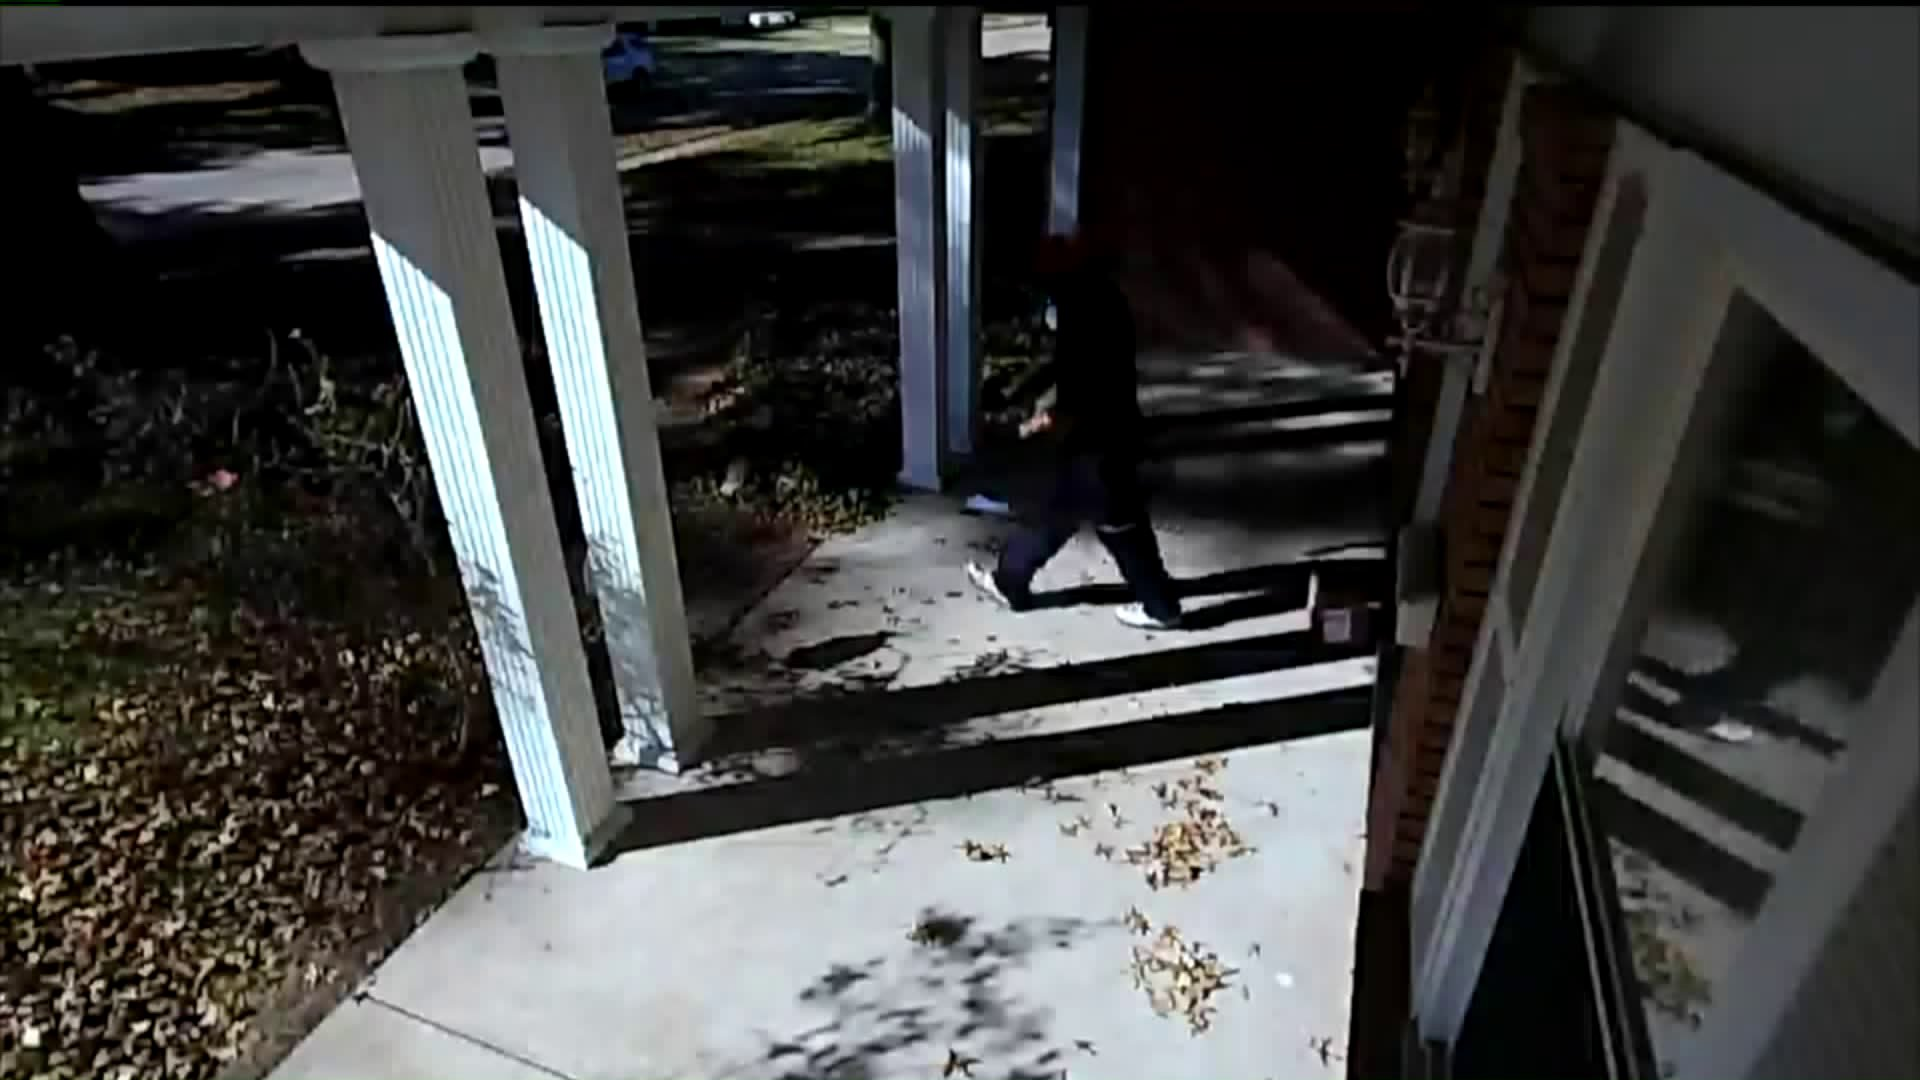 Homeowner Catches Delivery Driver Mishandling Fragile Package on Camera